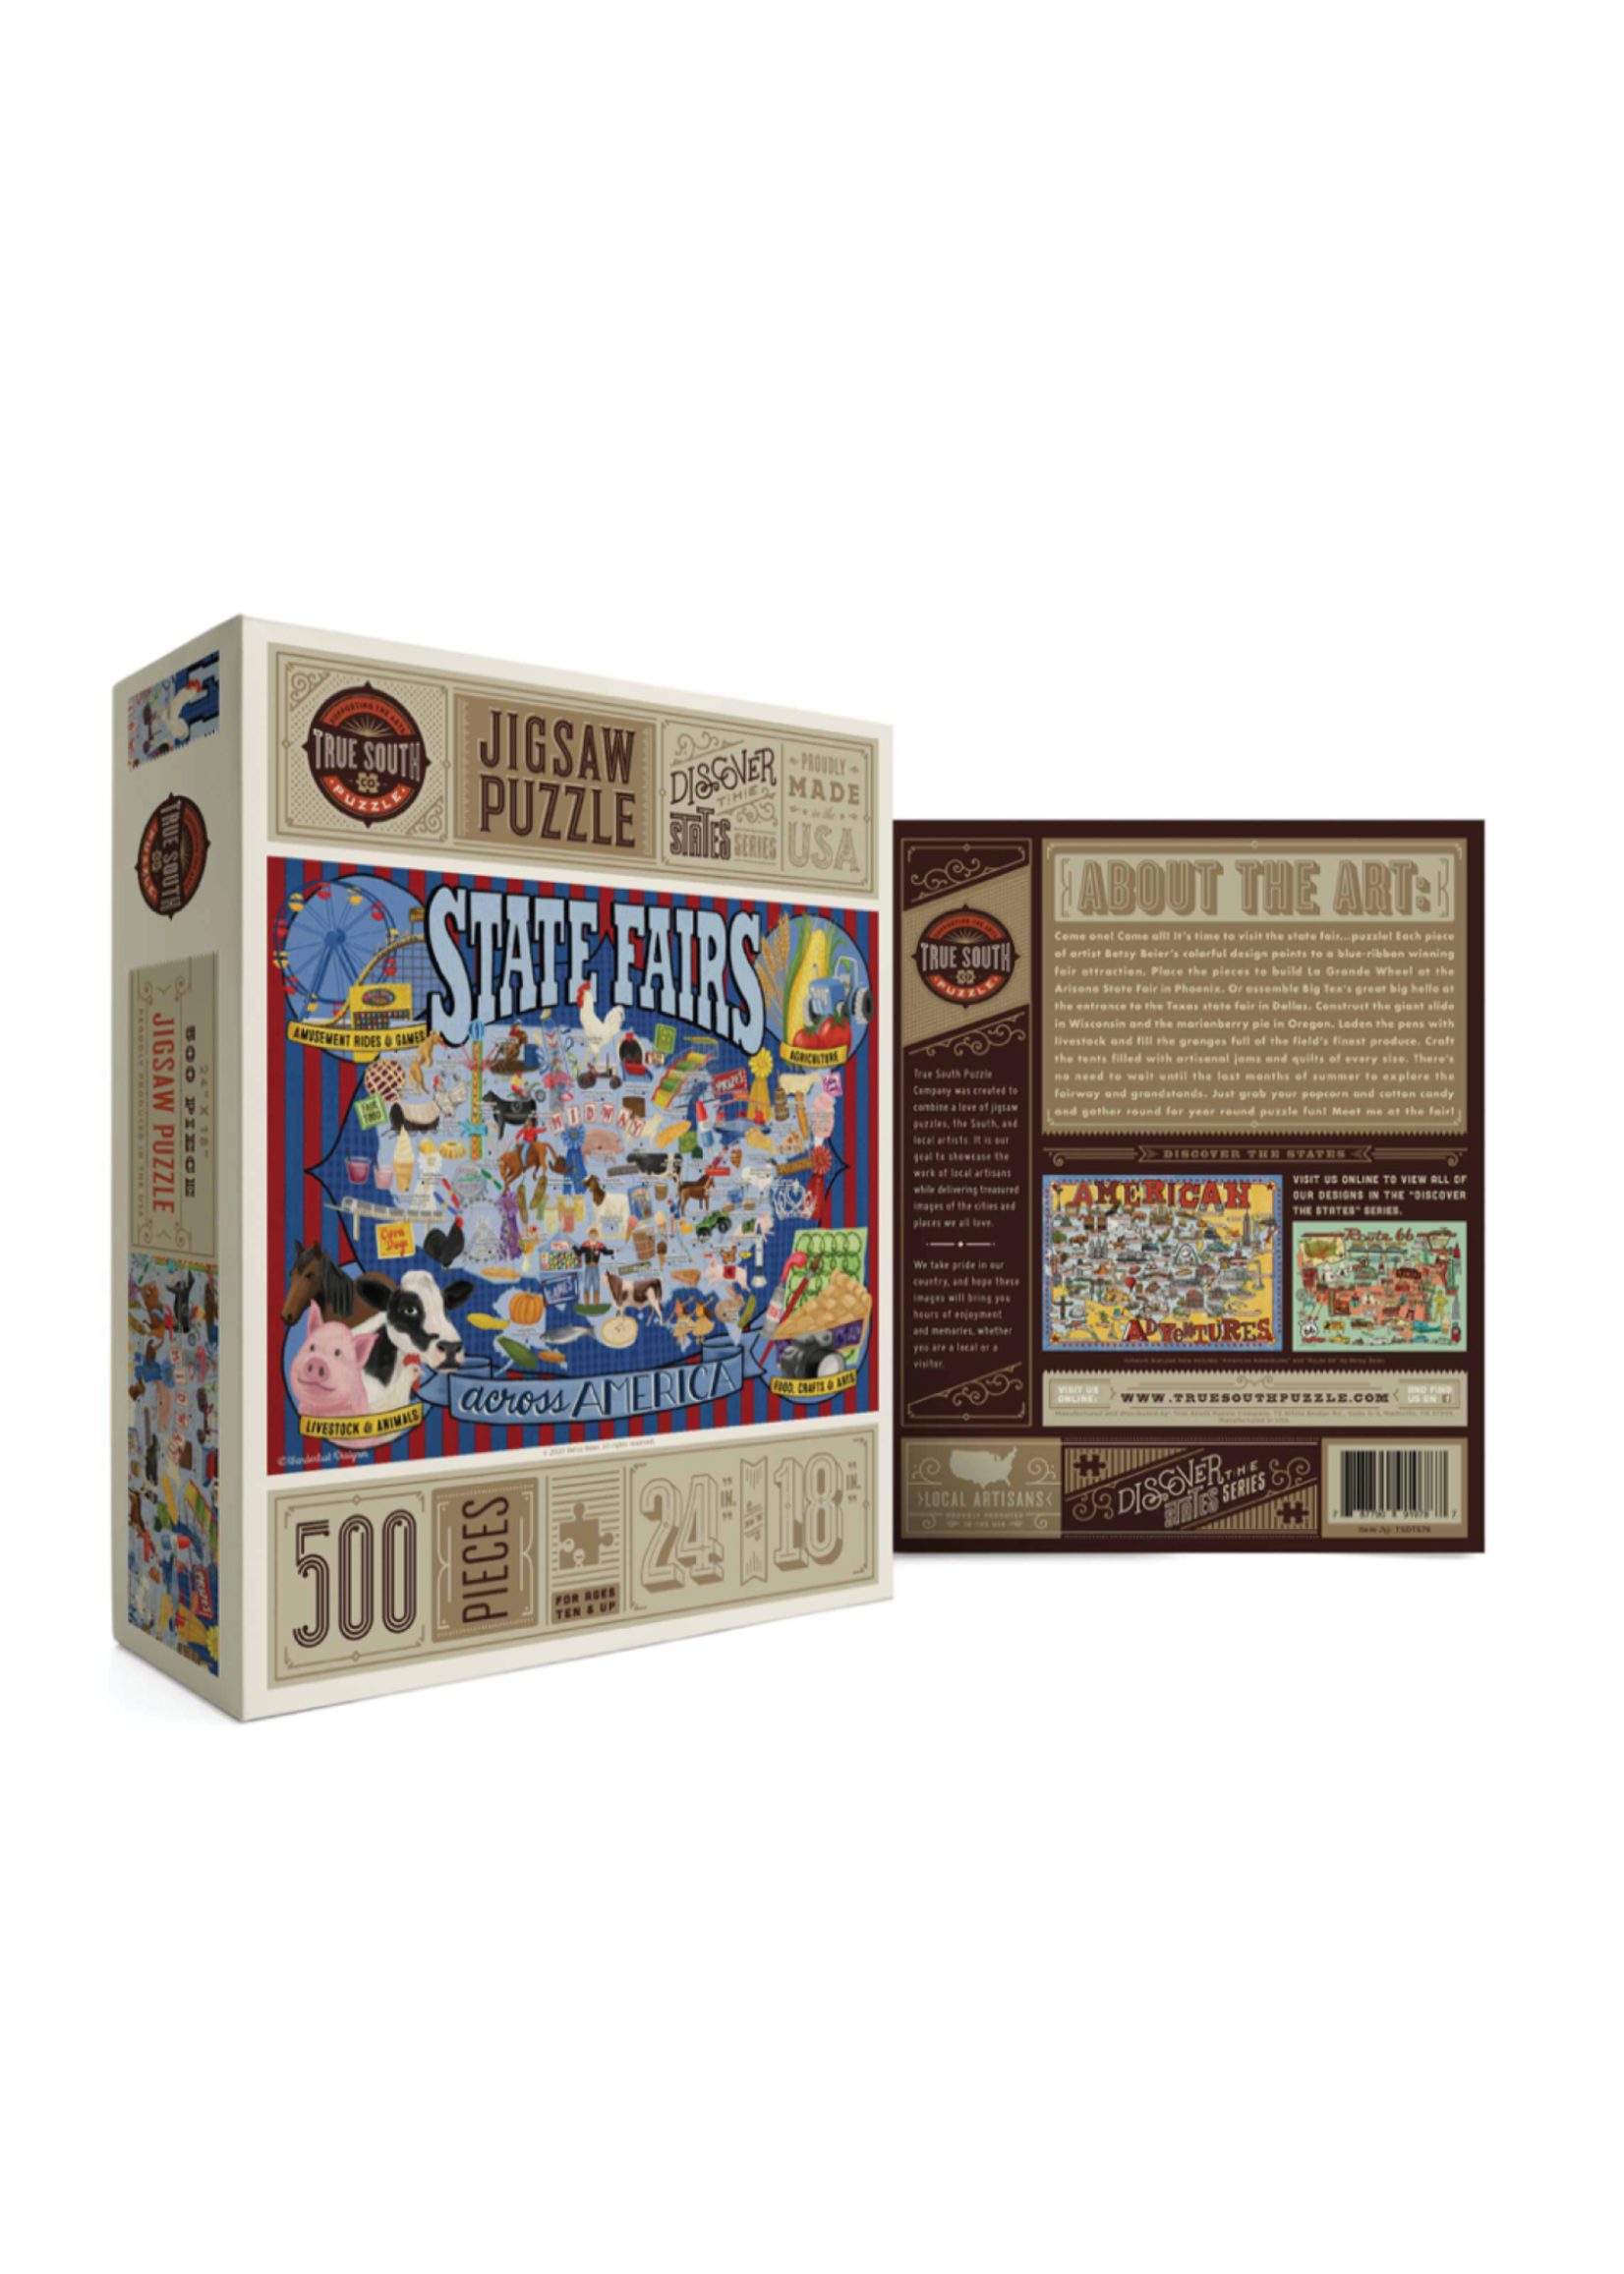 True South Puzzle State Fairs Puzzle